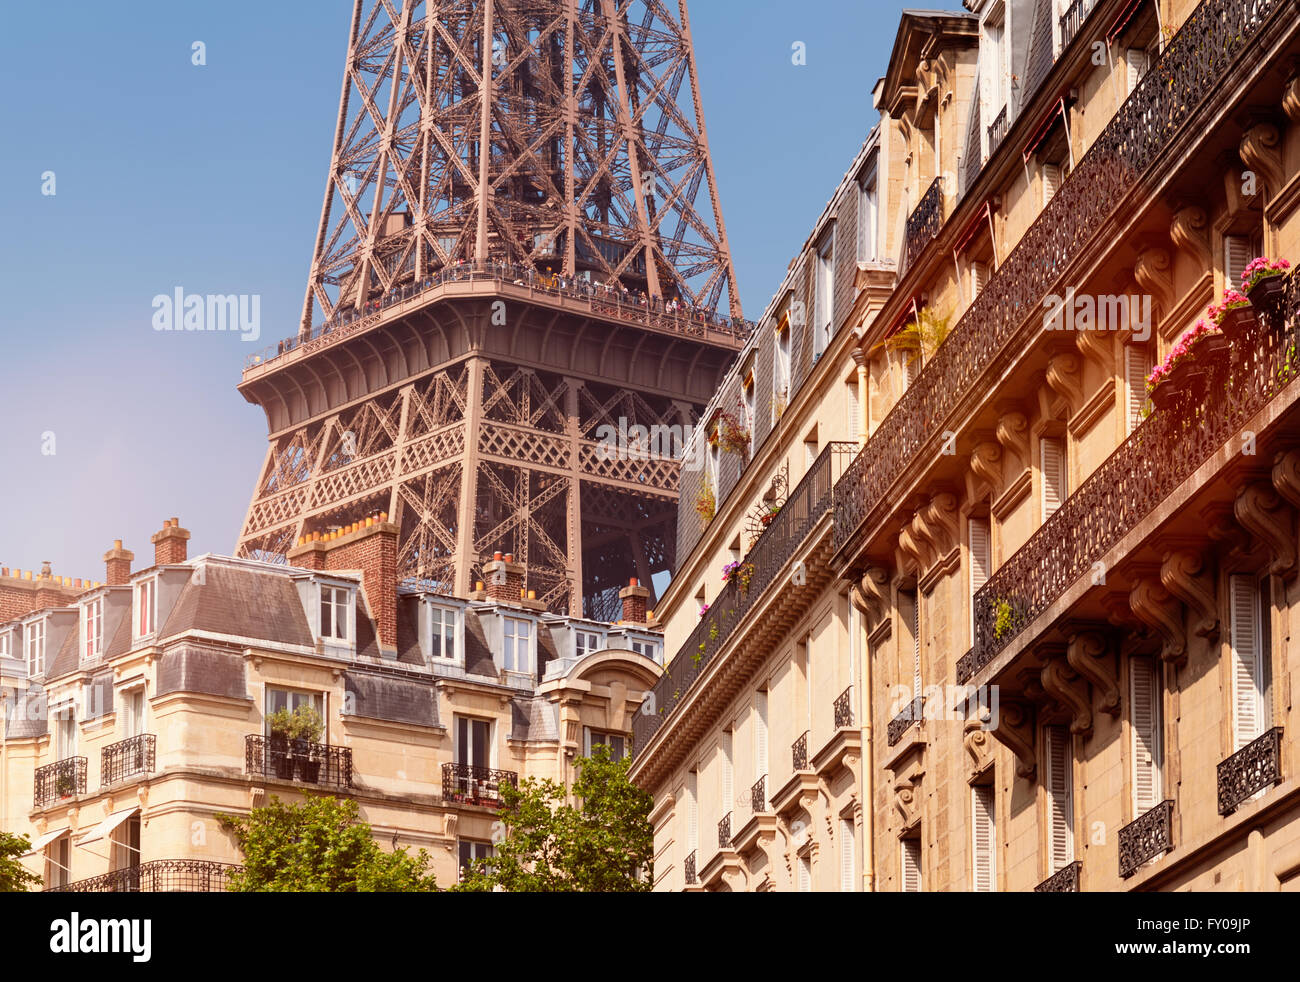 Eiffel Tower viewed from a nearby neighborhood. - Stock Image